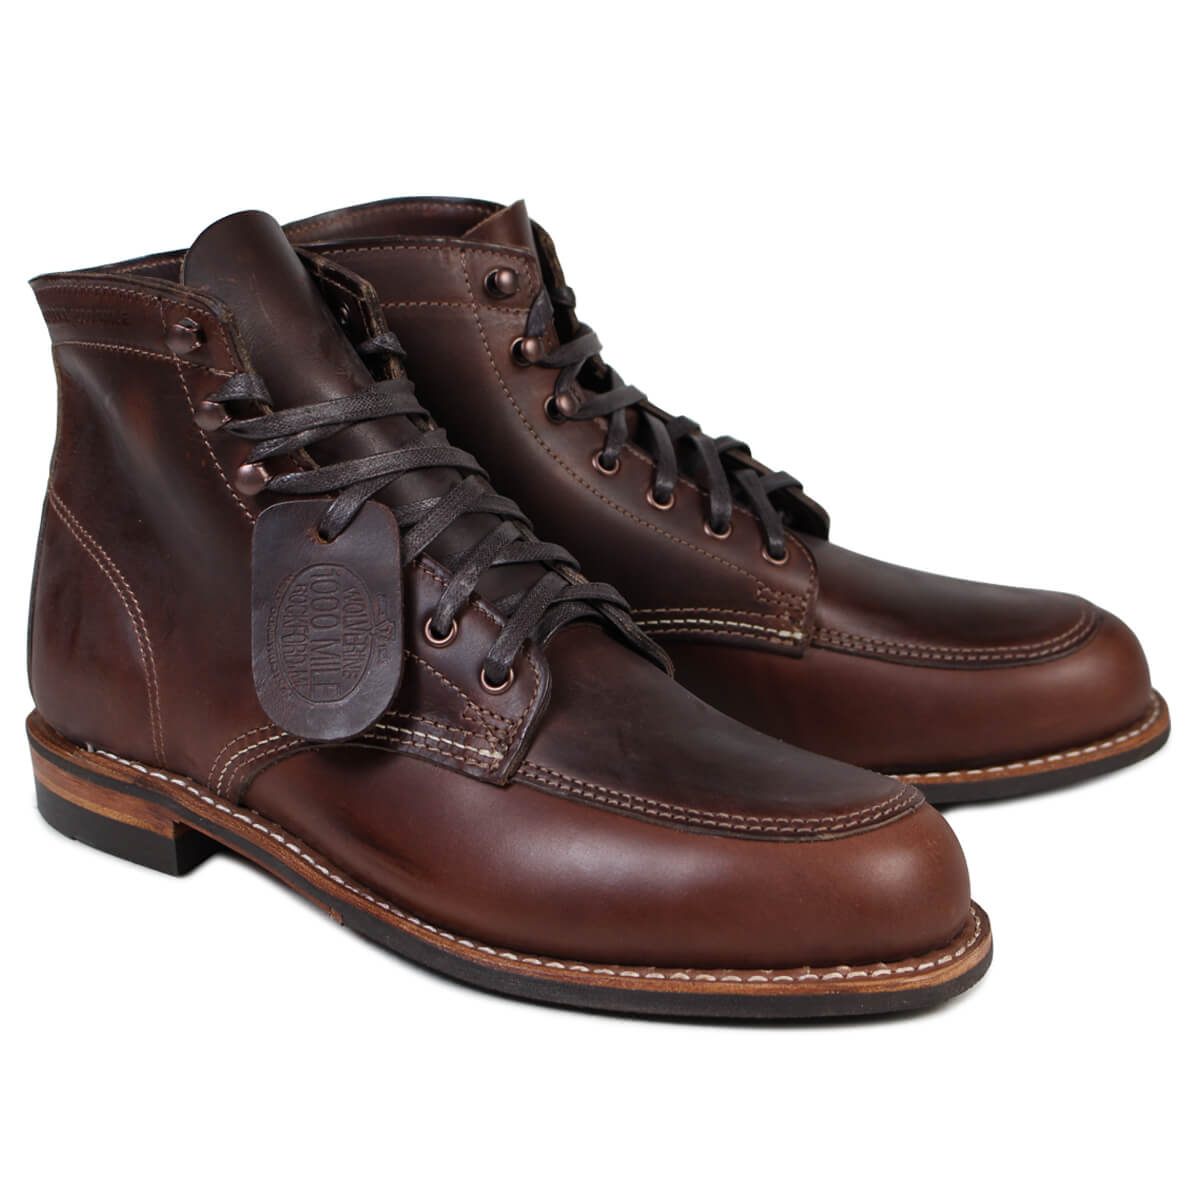 ea16c89b0e6 WOLVERINE 1000 マイルブーツウルヴァリン 1000MILE work boots COURTLAND BOOT D Wise  W00278 brown [172]